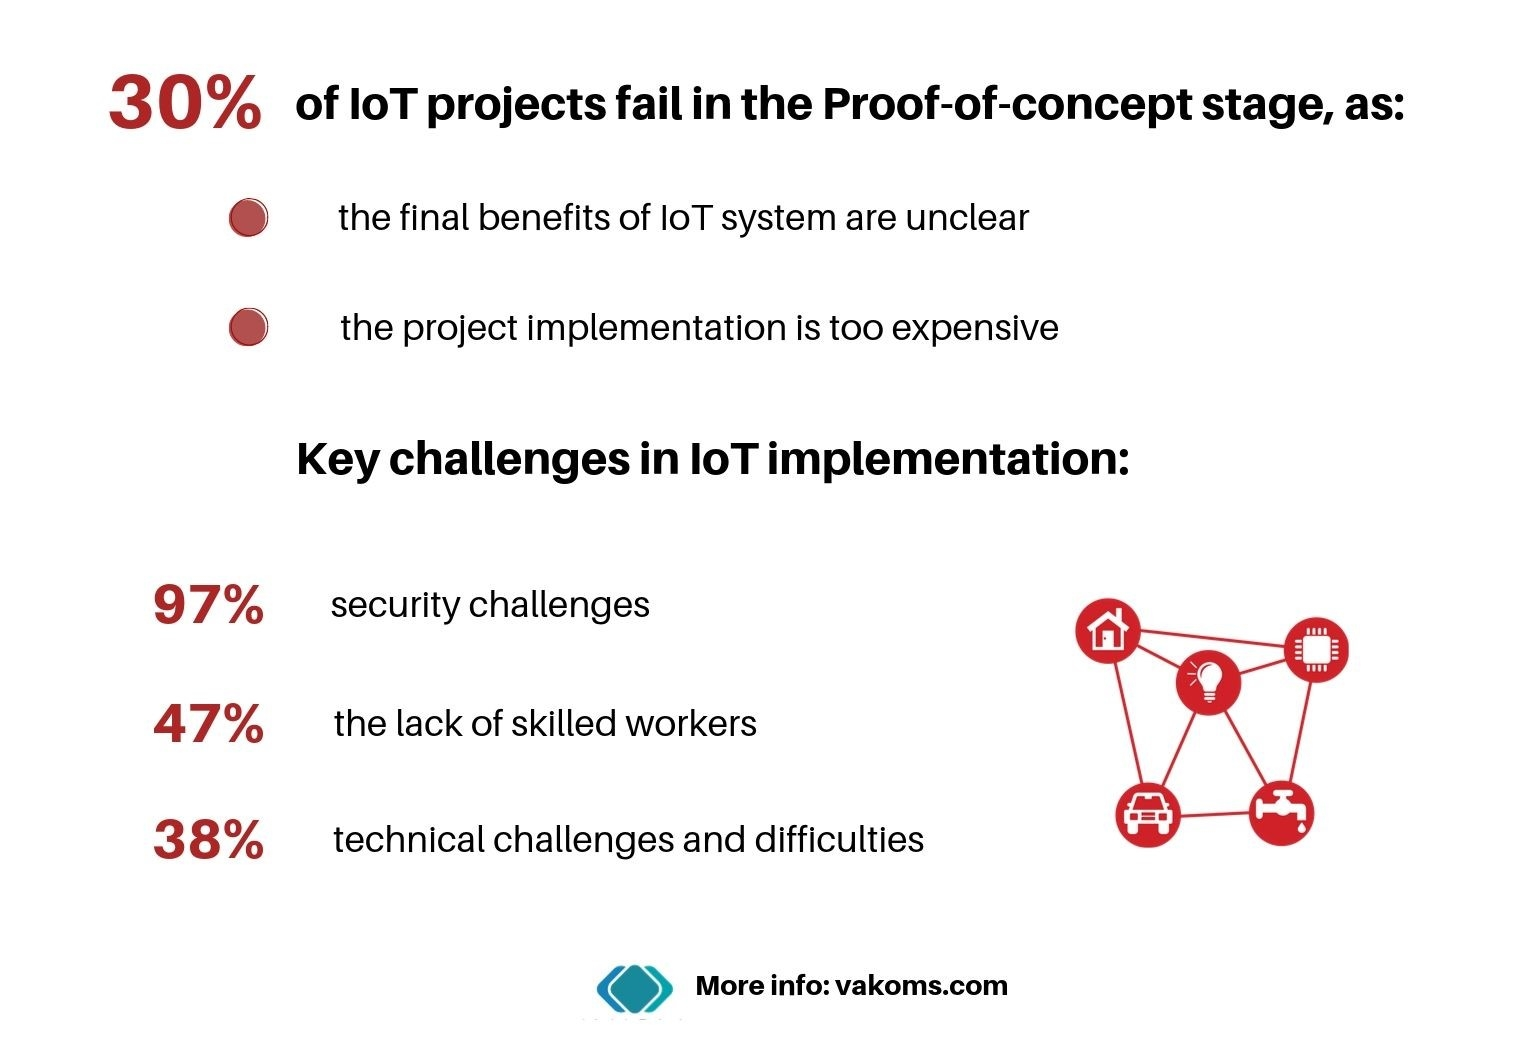 Challenges in implementing your IoT business idea